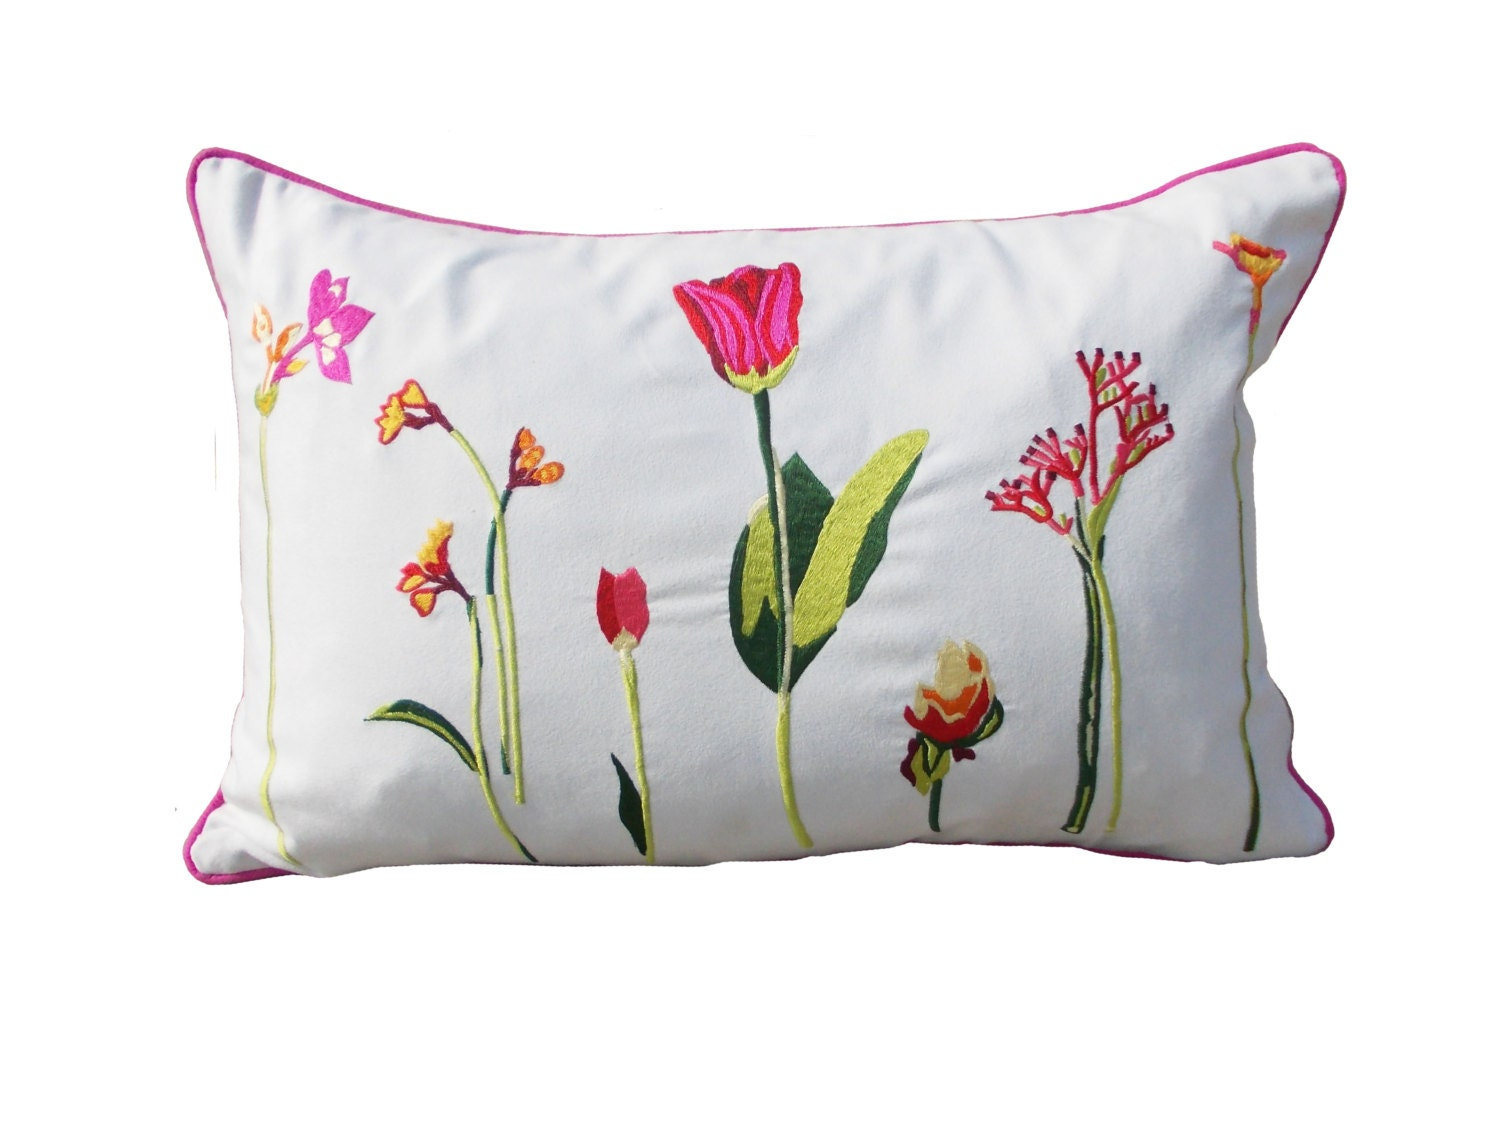 Polysuede pillow cover bright colour floral pattern embroidered pillow case oblong - VLiving